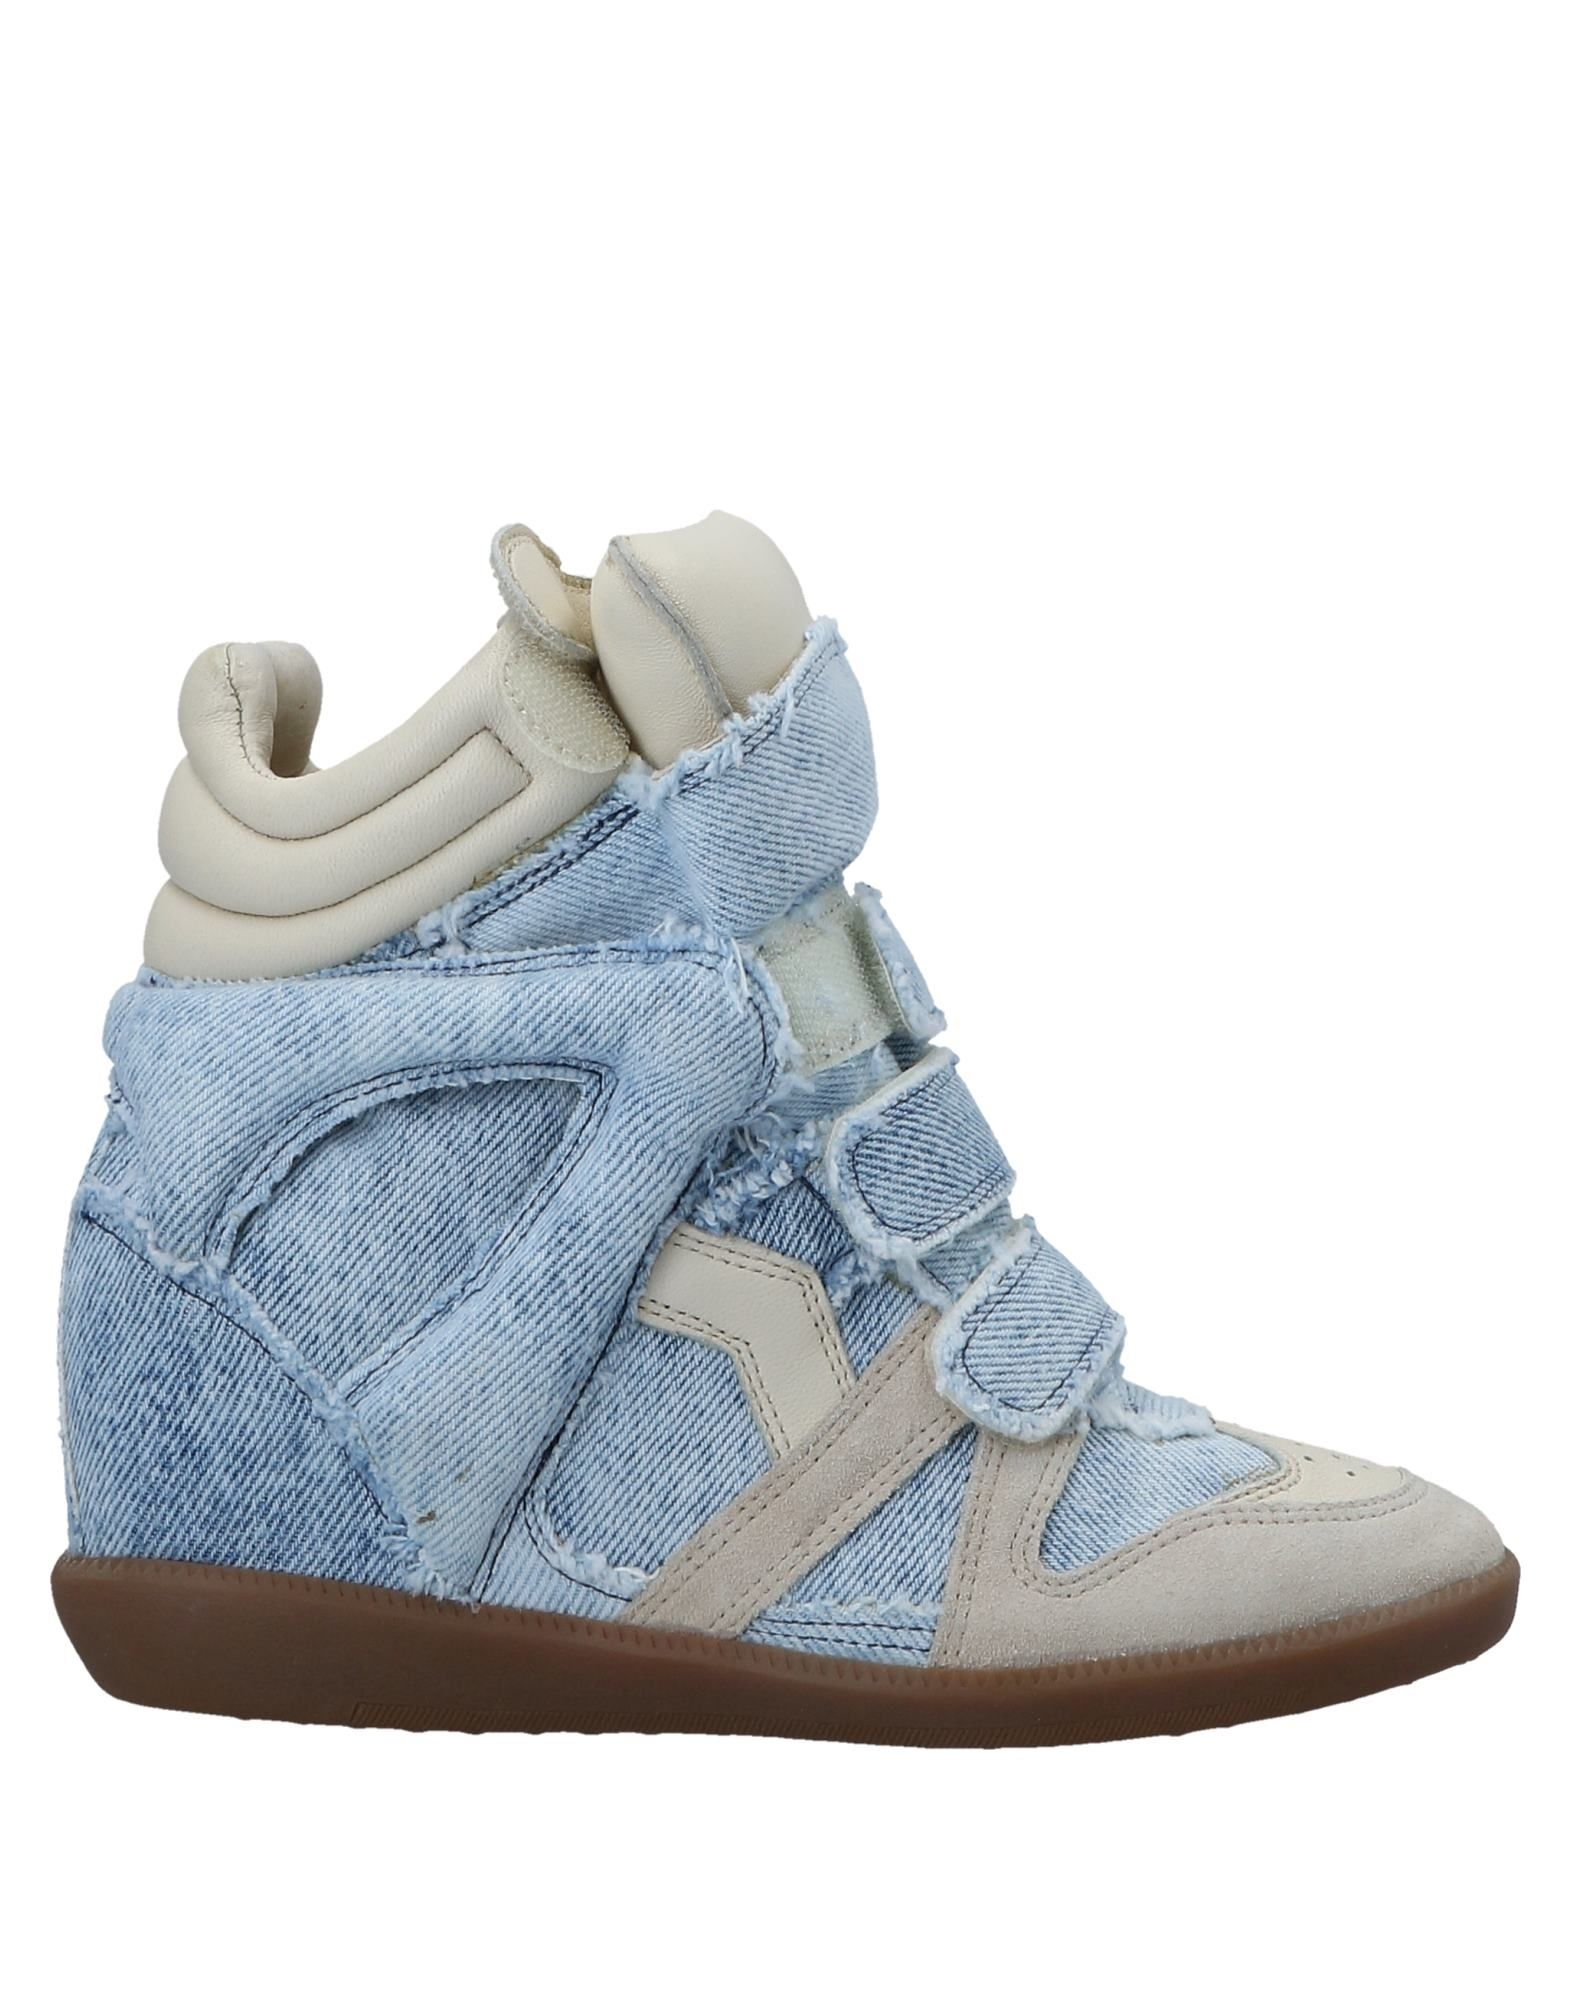 Isabel Marant Sneakers - Women Isabel Marant Sneakers - online on  Australia - Sneakers 11551560IA c82c30